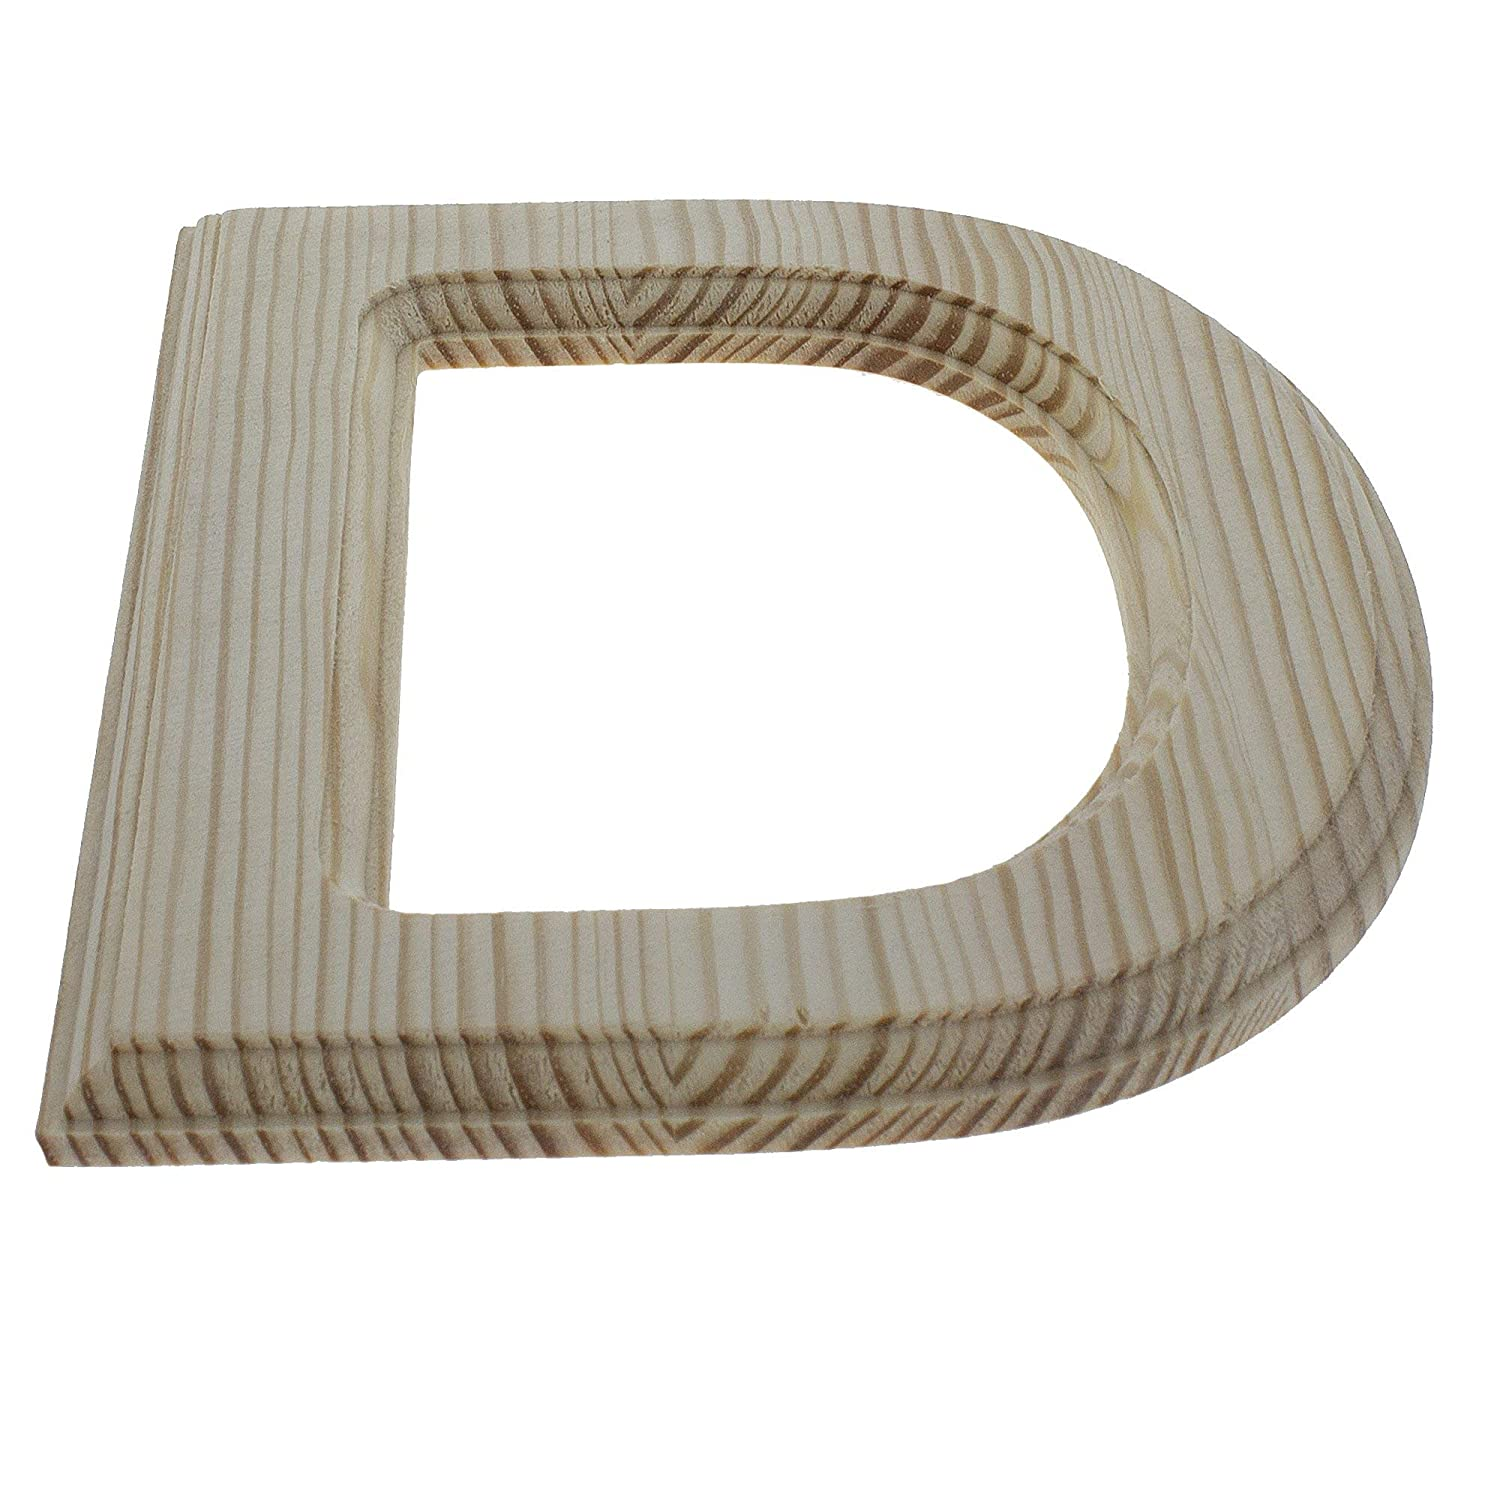 6.25 Inches BestPysanky Unfinished Wooden Letter D